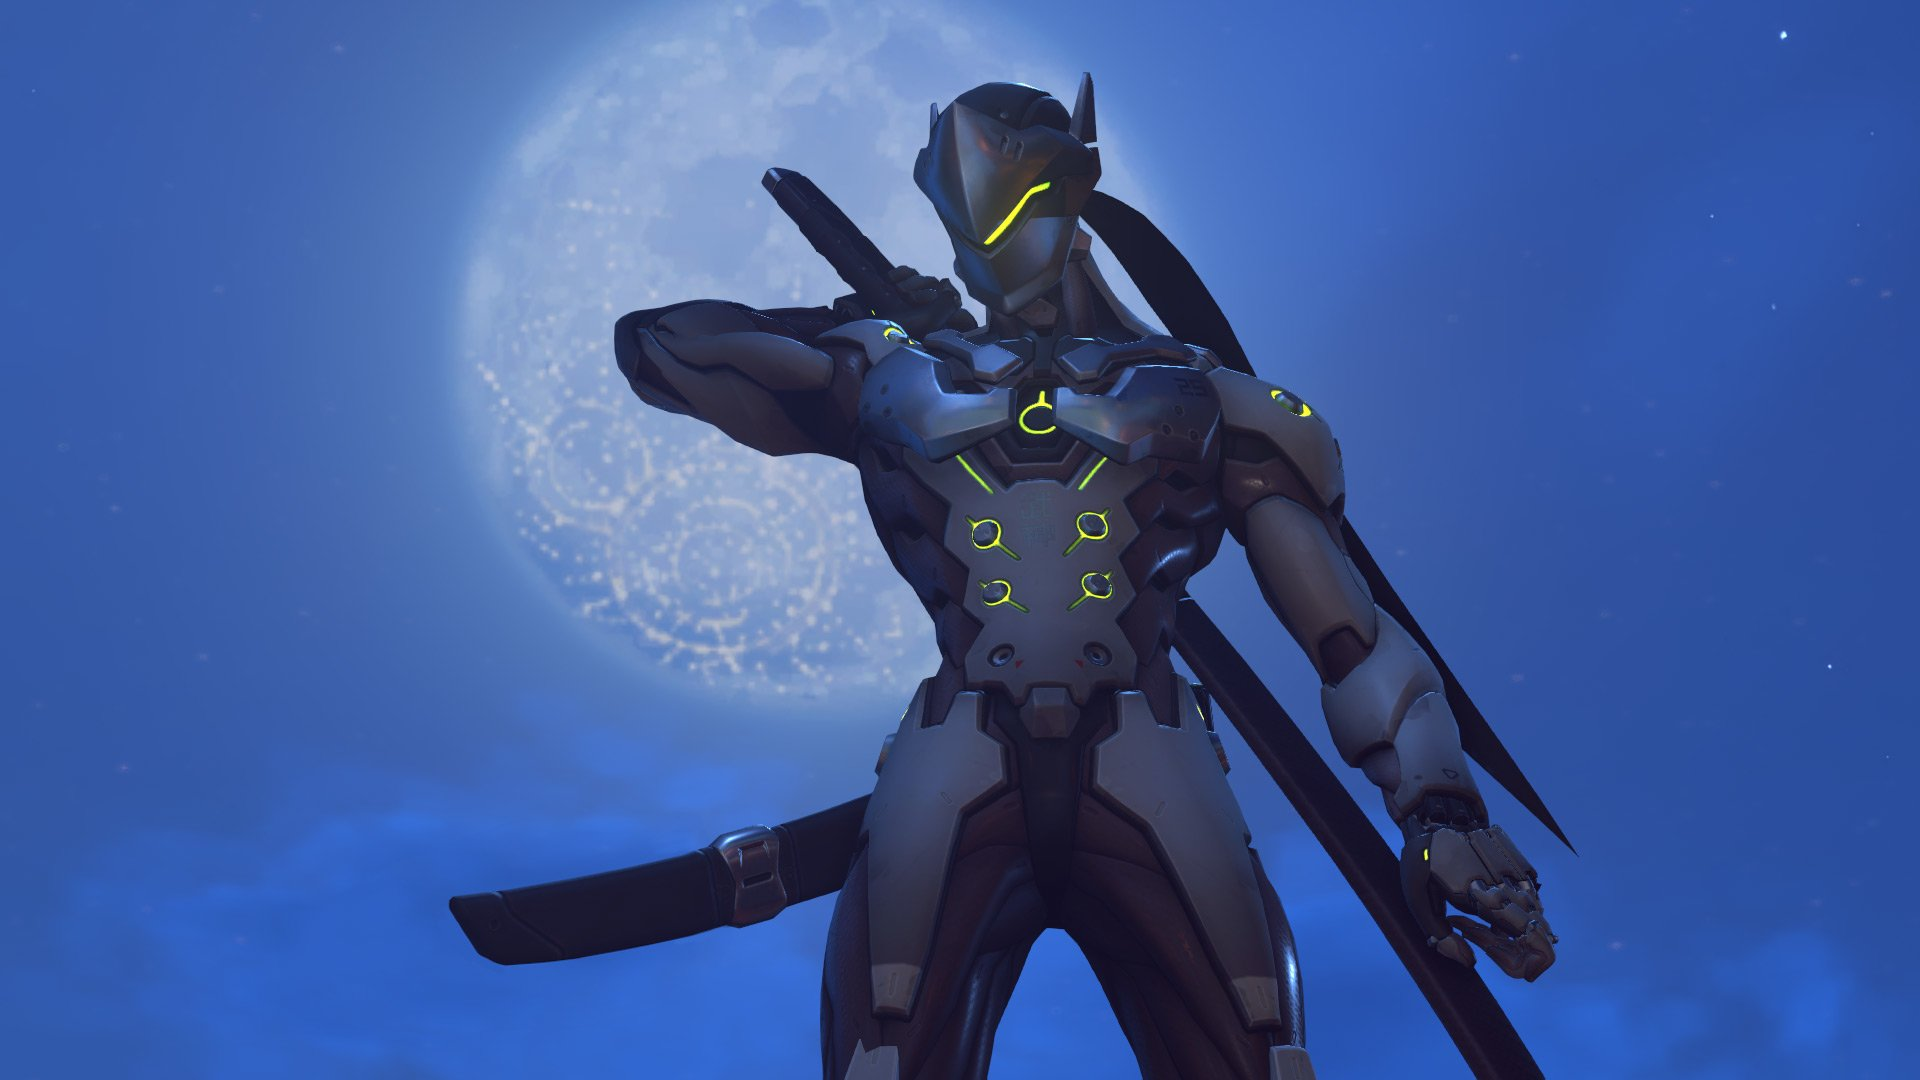 141 Genji Overwatch Hd Wallpapers Background Images Wallpaper